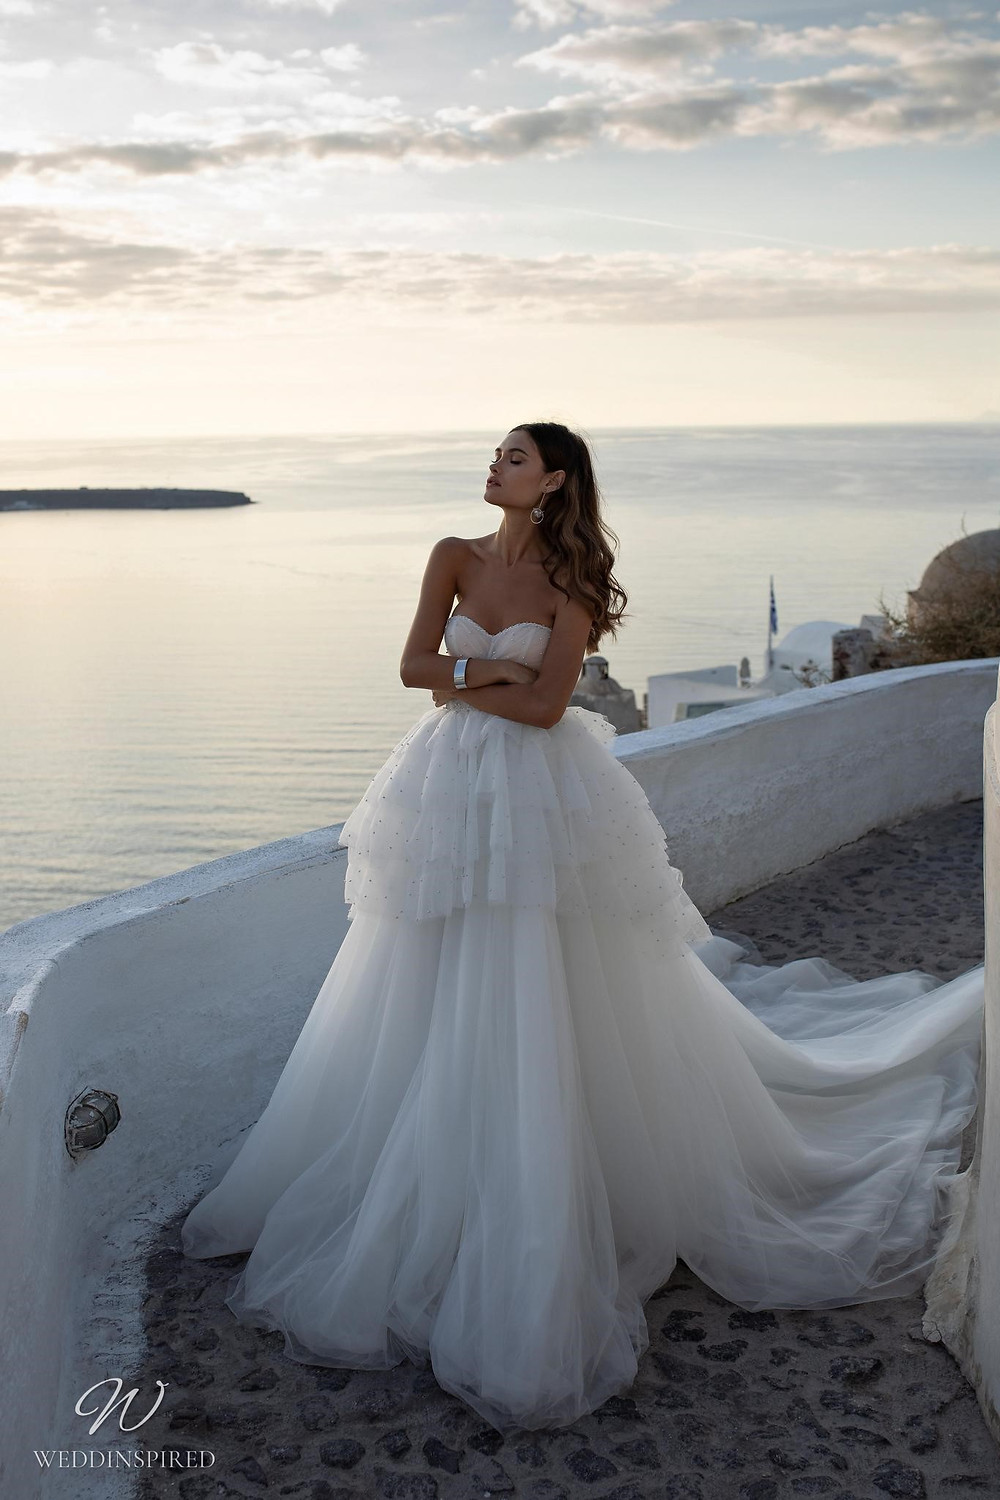 A Ricca Sposa strapless tulle ball gown wedding dress with a layered ruffle skirt and a sweetheart neckline